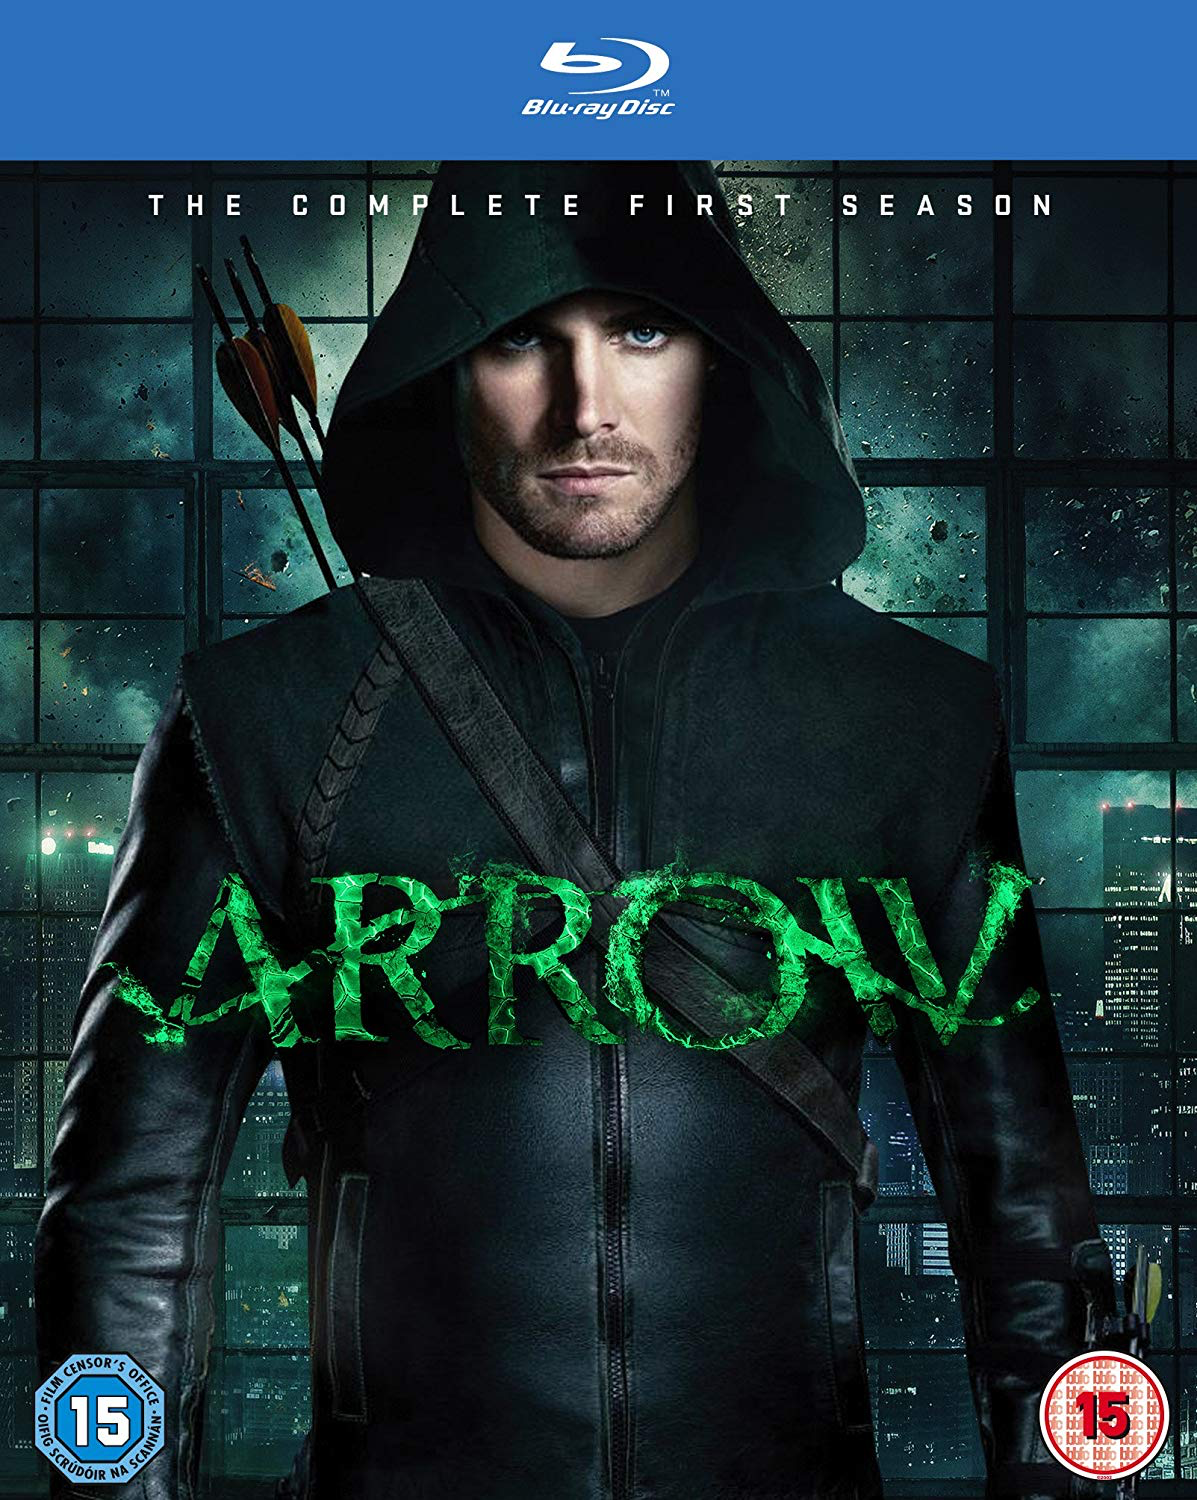 Arrow - The Complete First Season region B cover.png